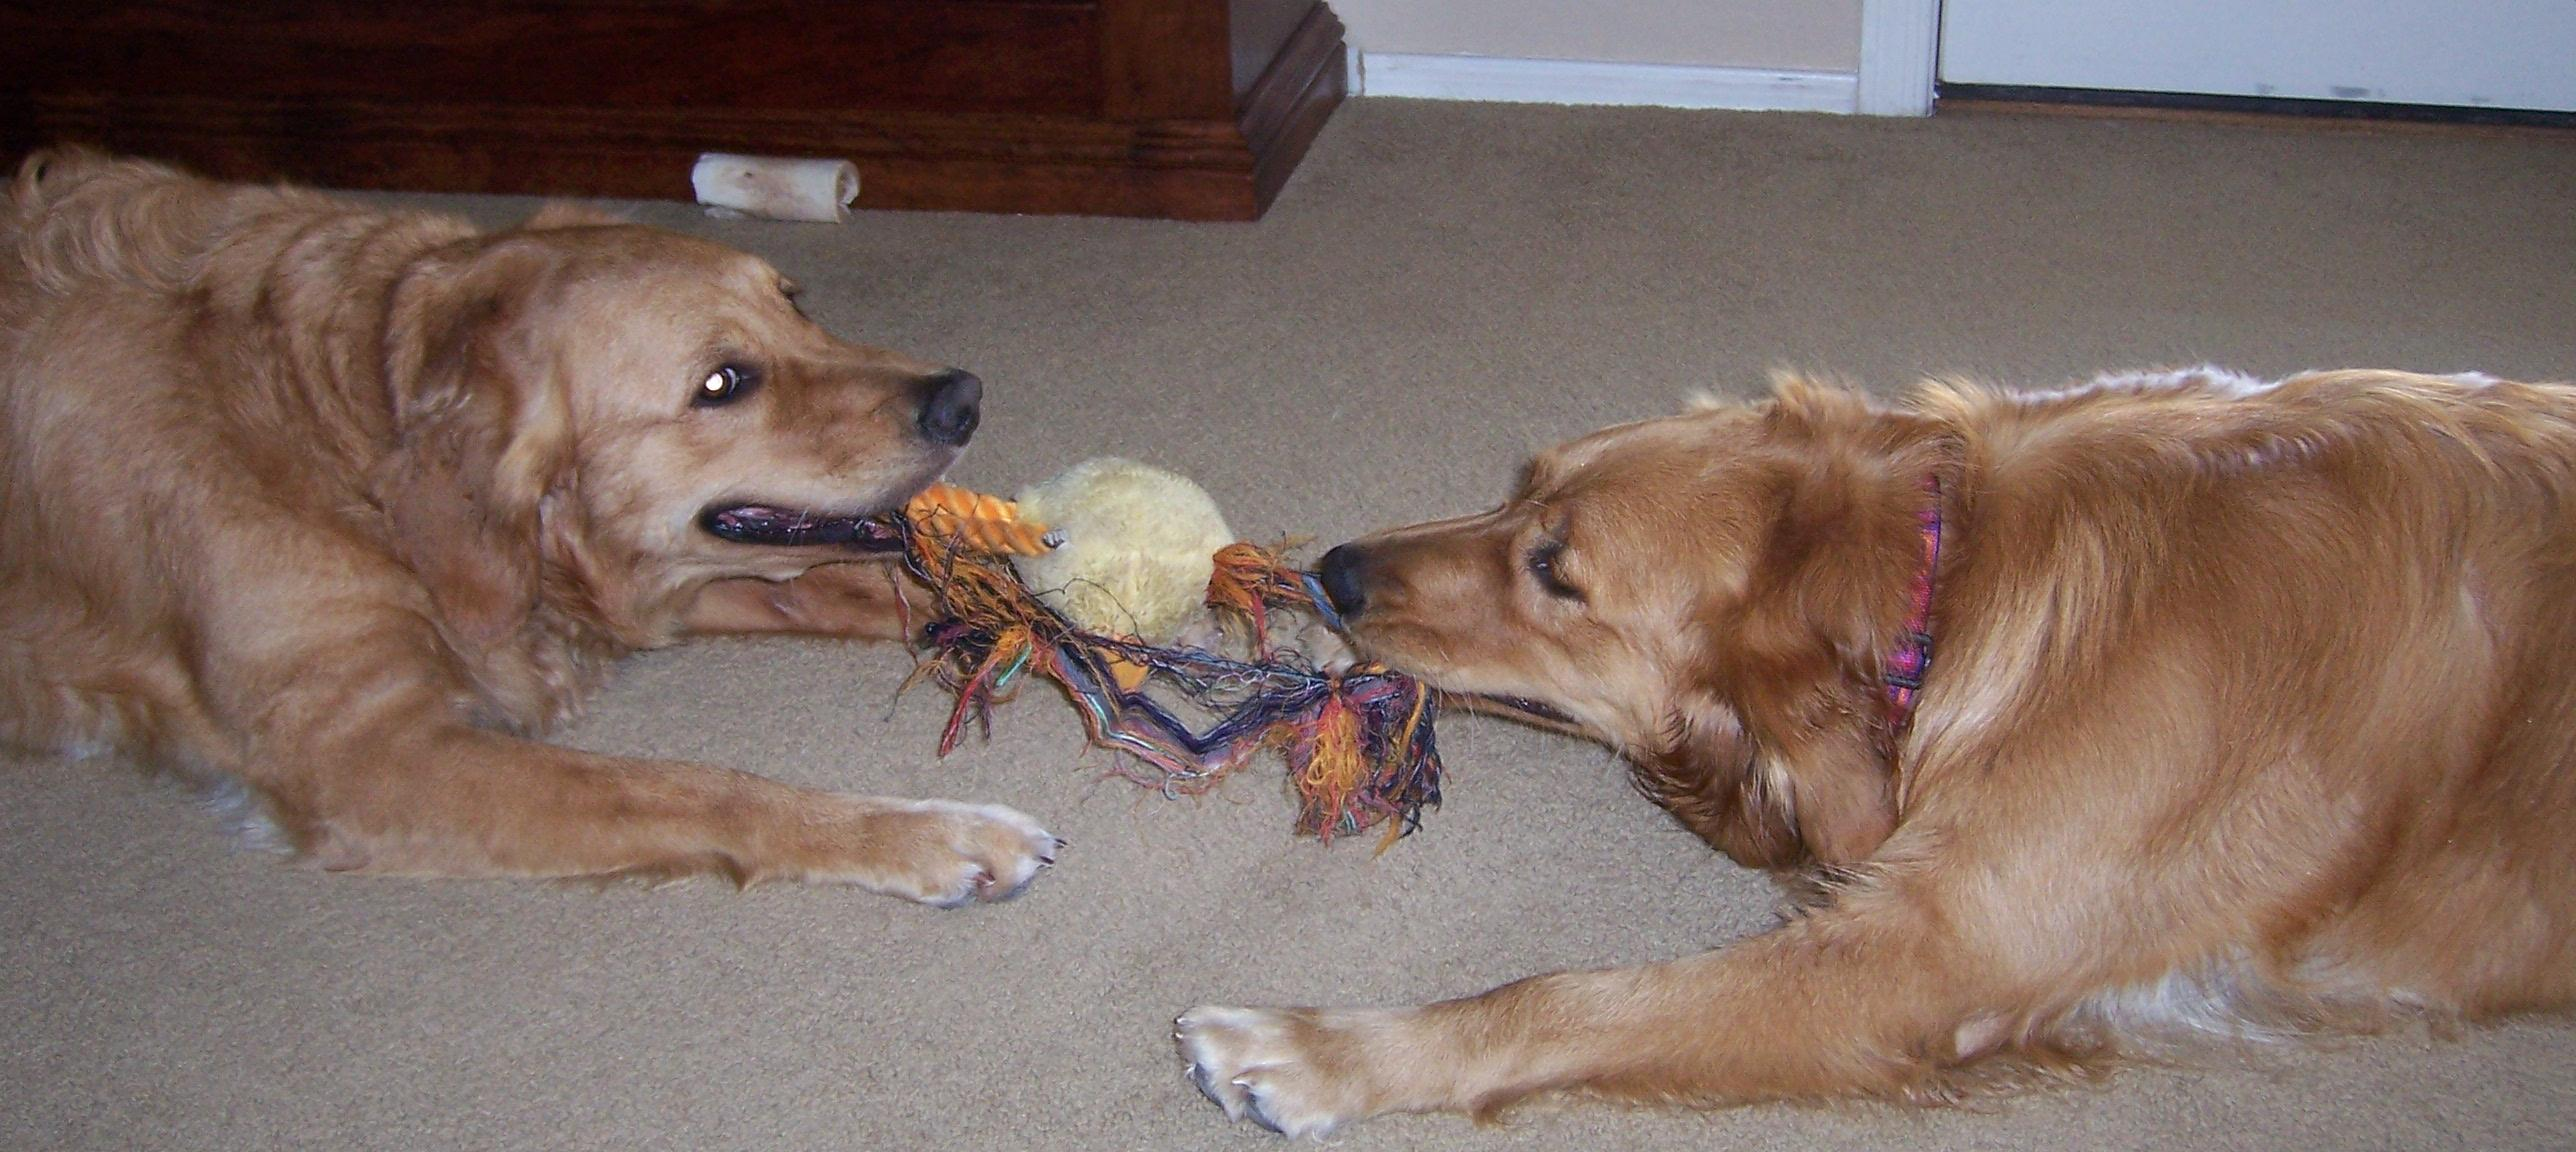 Dogs_playing.JPG